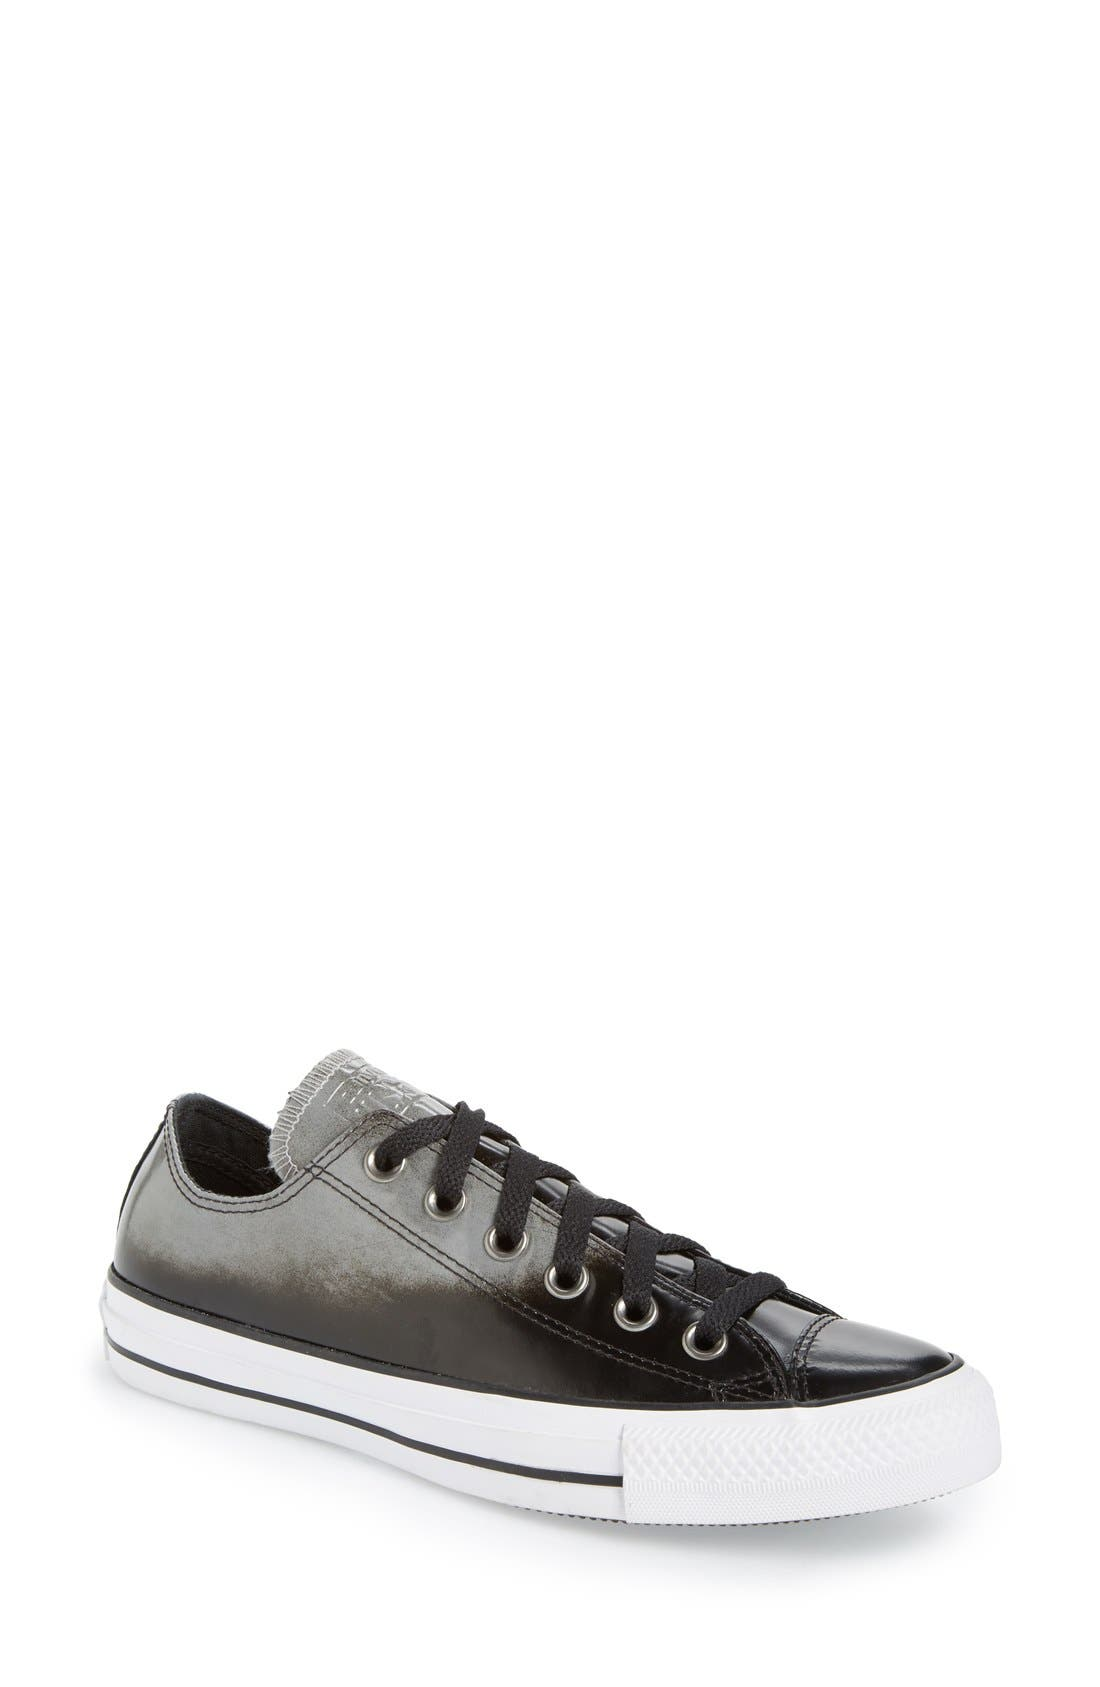 Alternate Image 1 Selected - Converse All Star®Chuck Taylor® 'OmbréOx' Sneaker (Women)